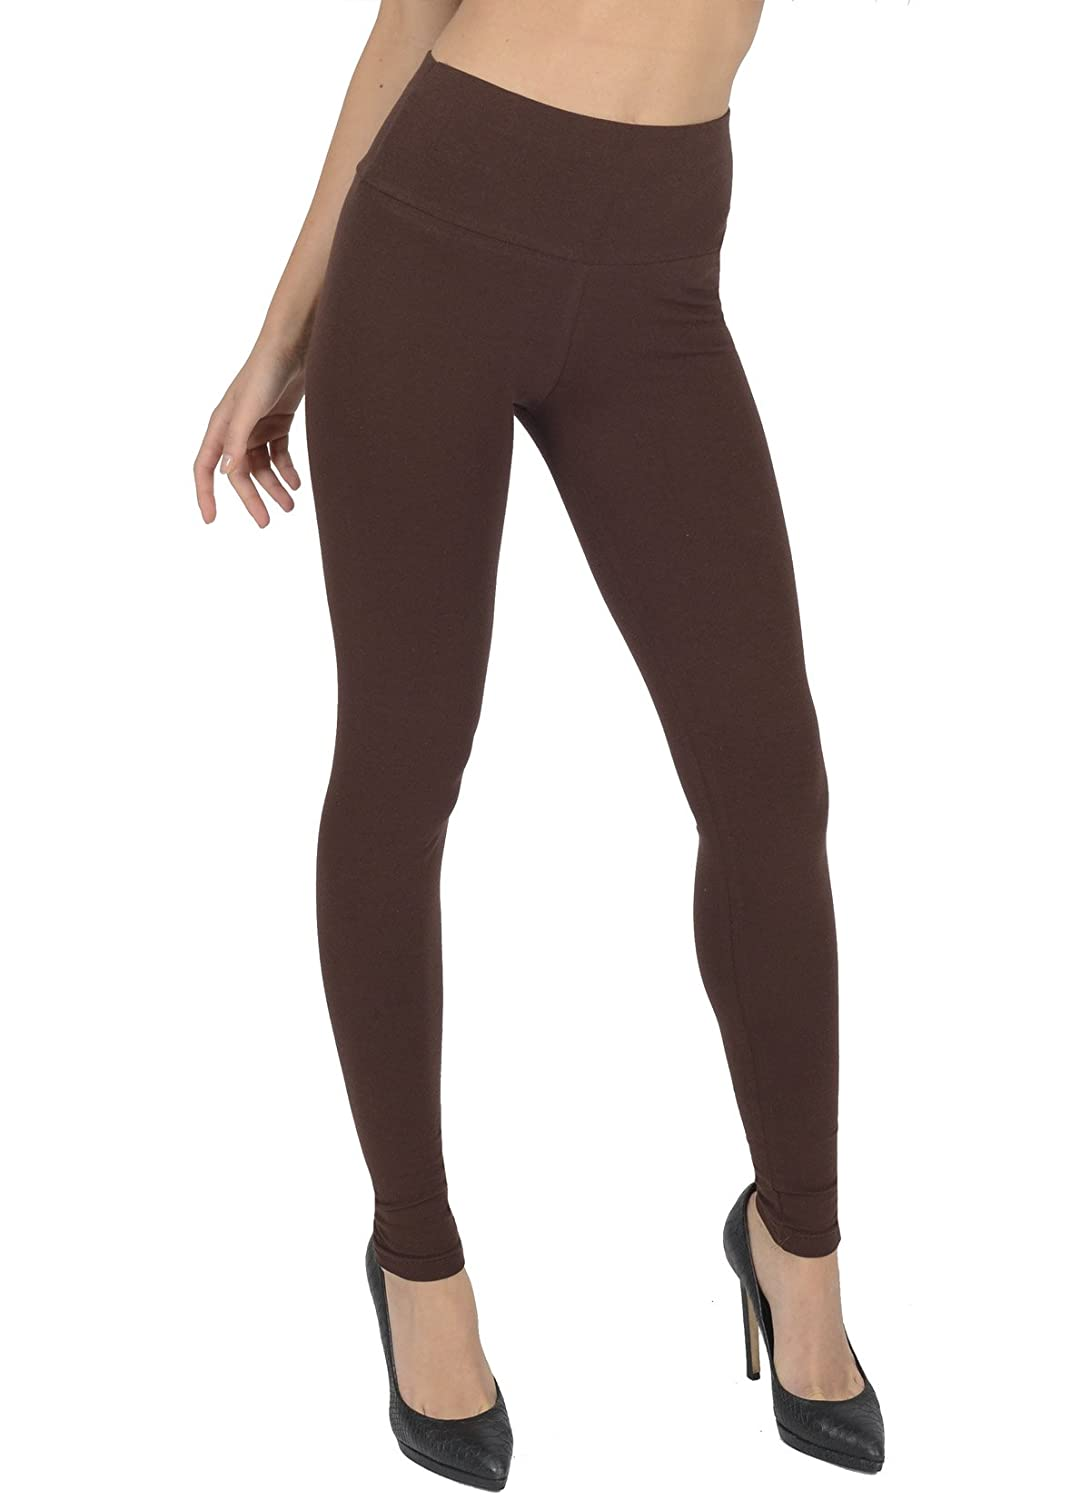 8a401445af9af Women's High Waisted Full Length Leggings By Today Is Her ® Extra Comfort  Range, Plus Sizes: Amazon.co.uk: Clothing